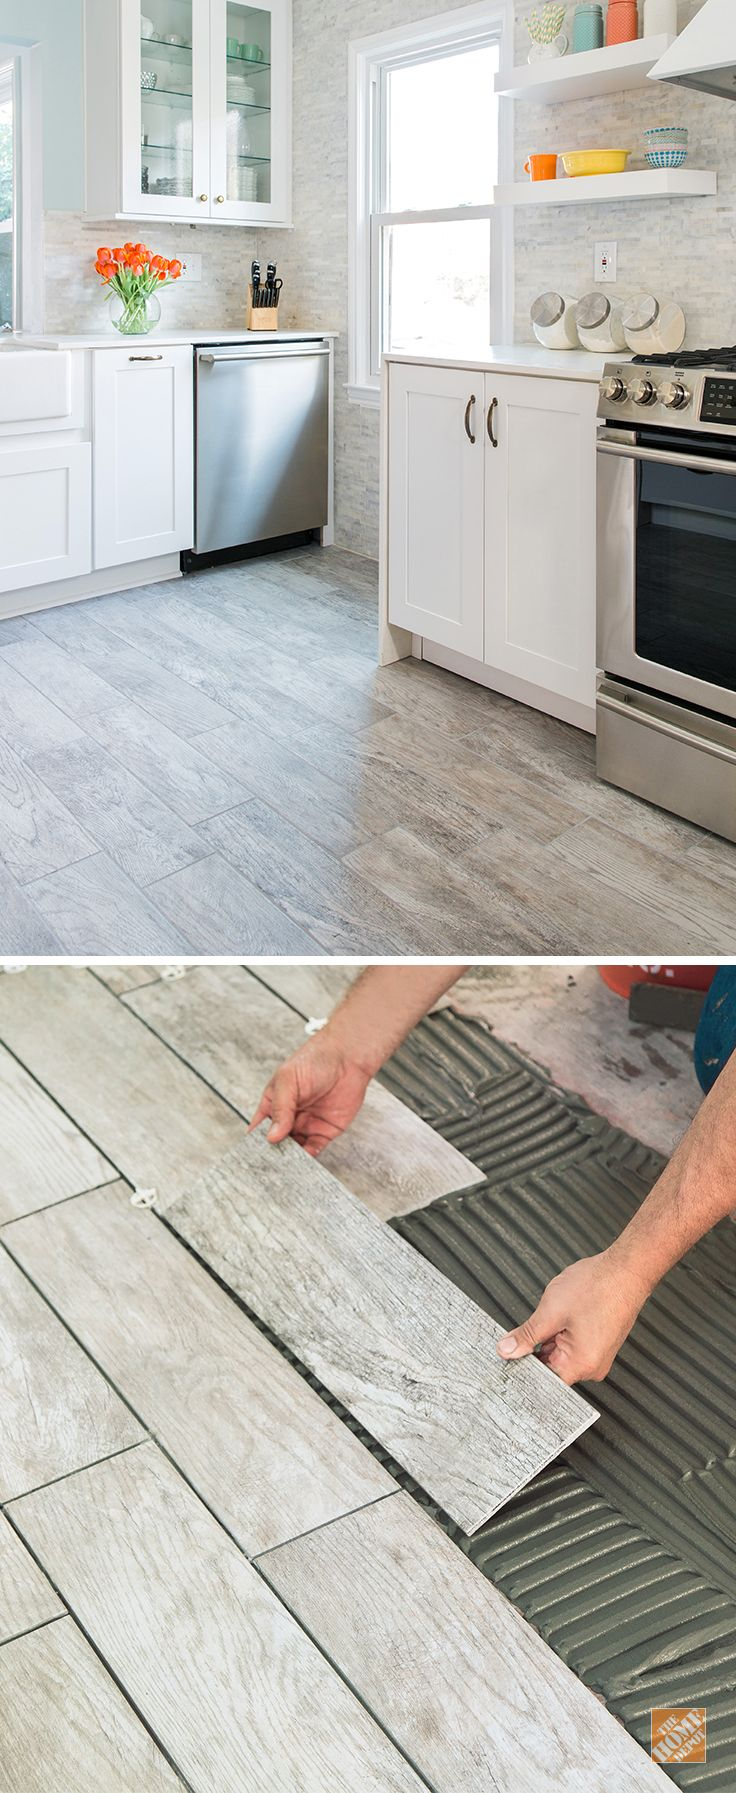 tile floor treatment tips | Wood-look tile combines the natural warmth of wood with ...